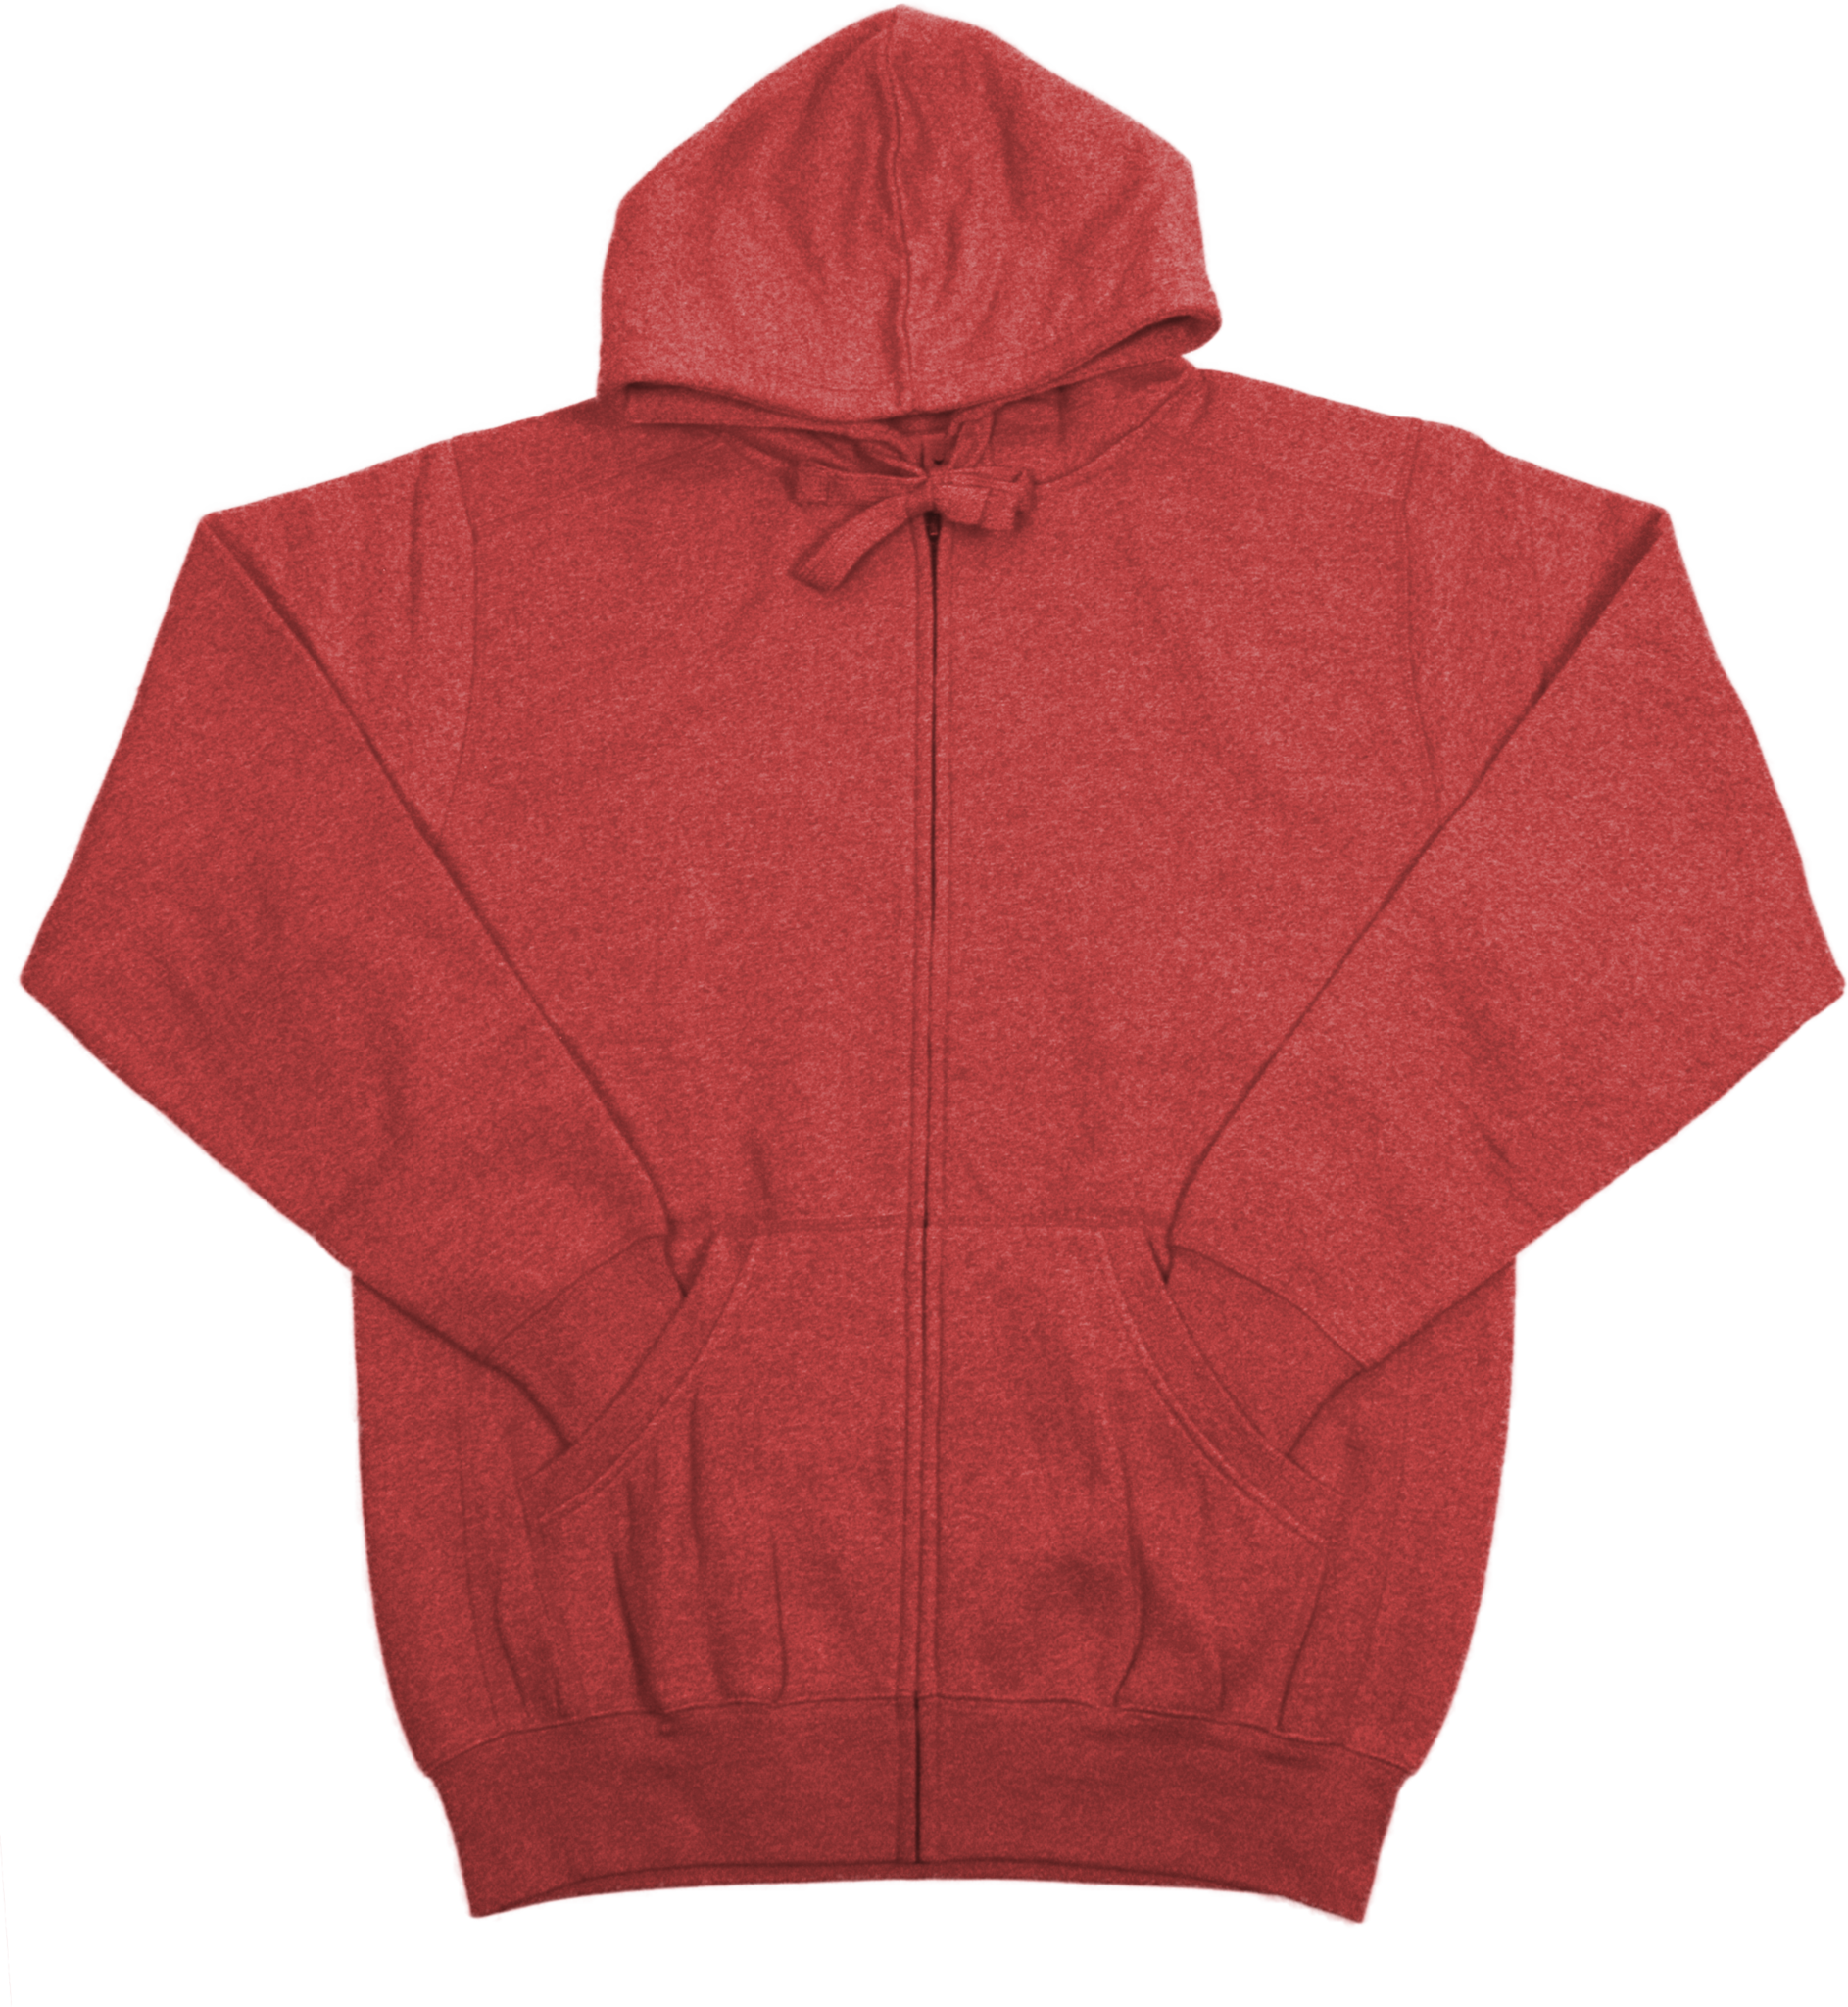 Unisex Peppered Zip Up Hoodie (AVMT789)